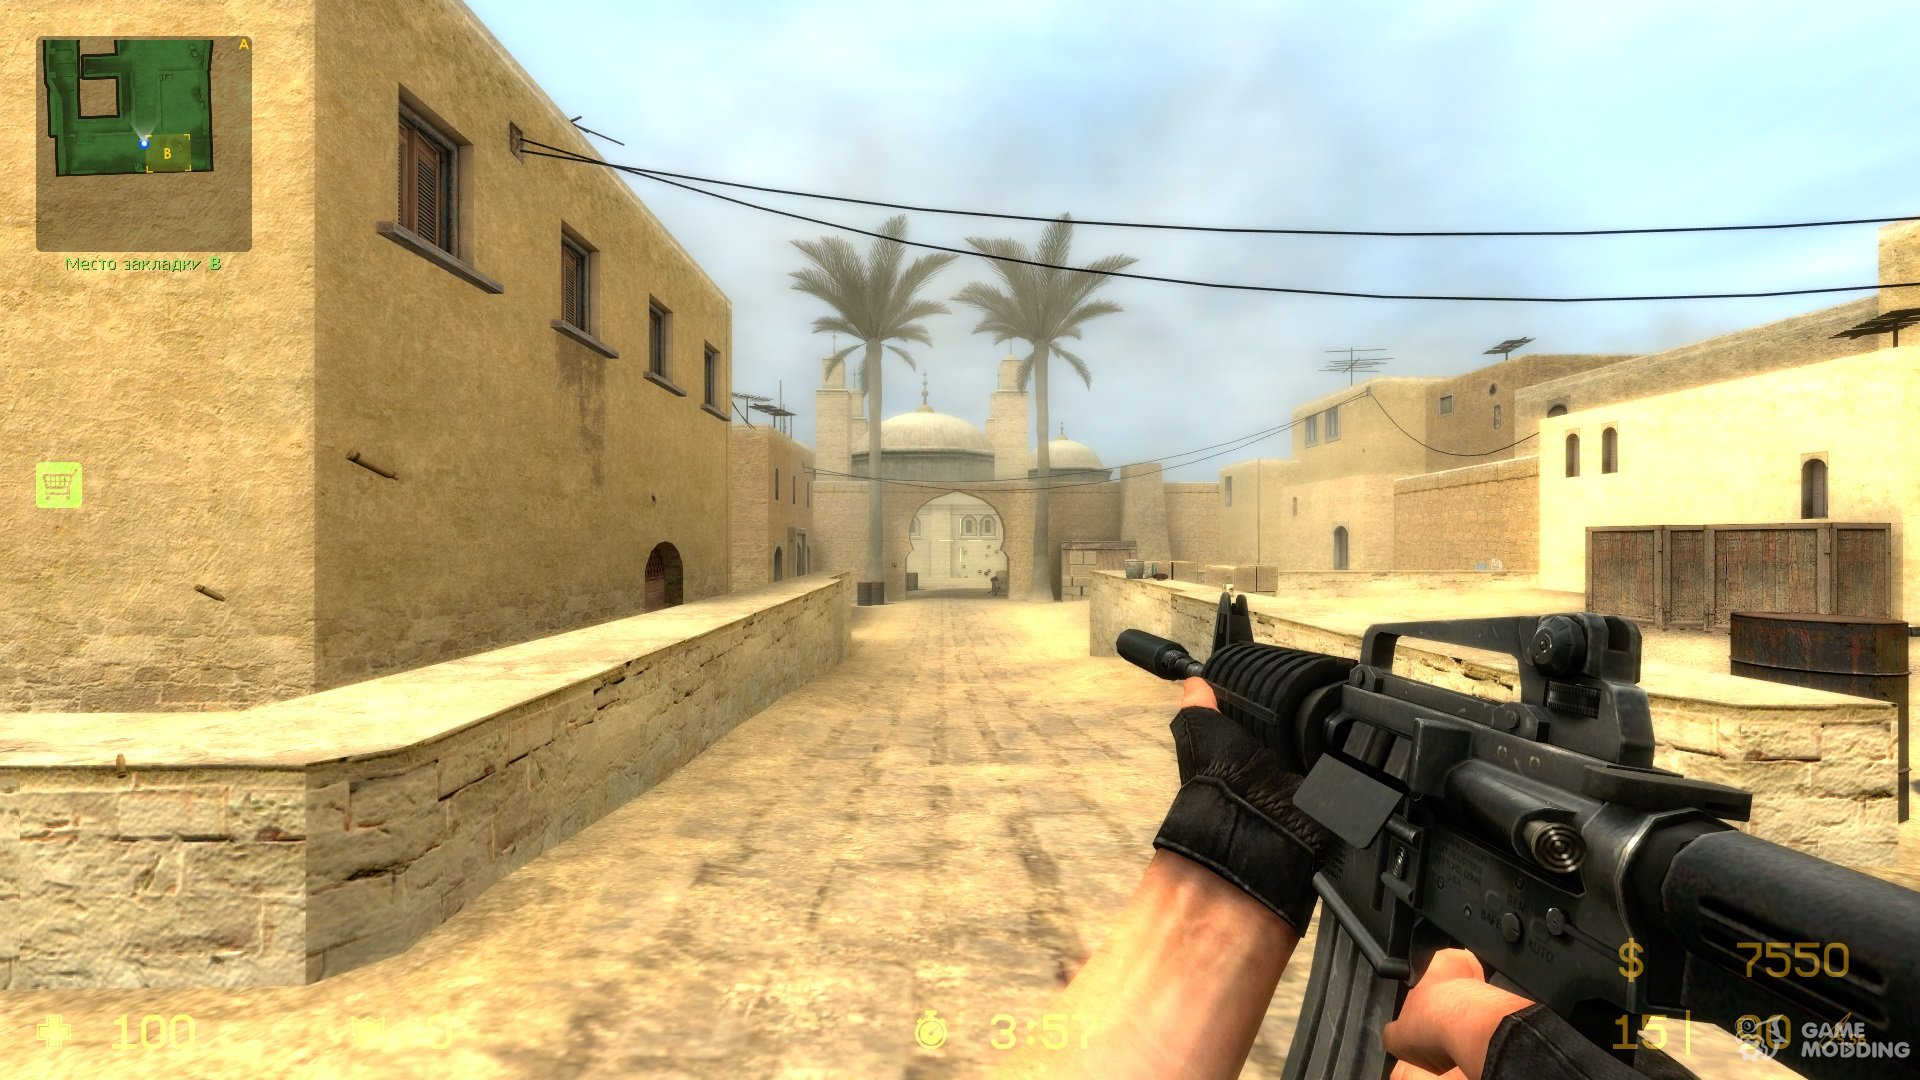 The weapon sounds from Left 4 Dead 2 for Counter-Strike Source